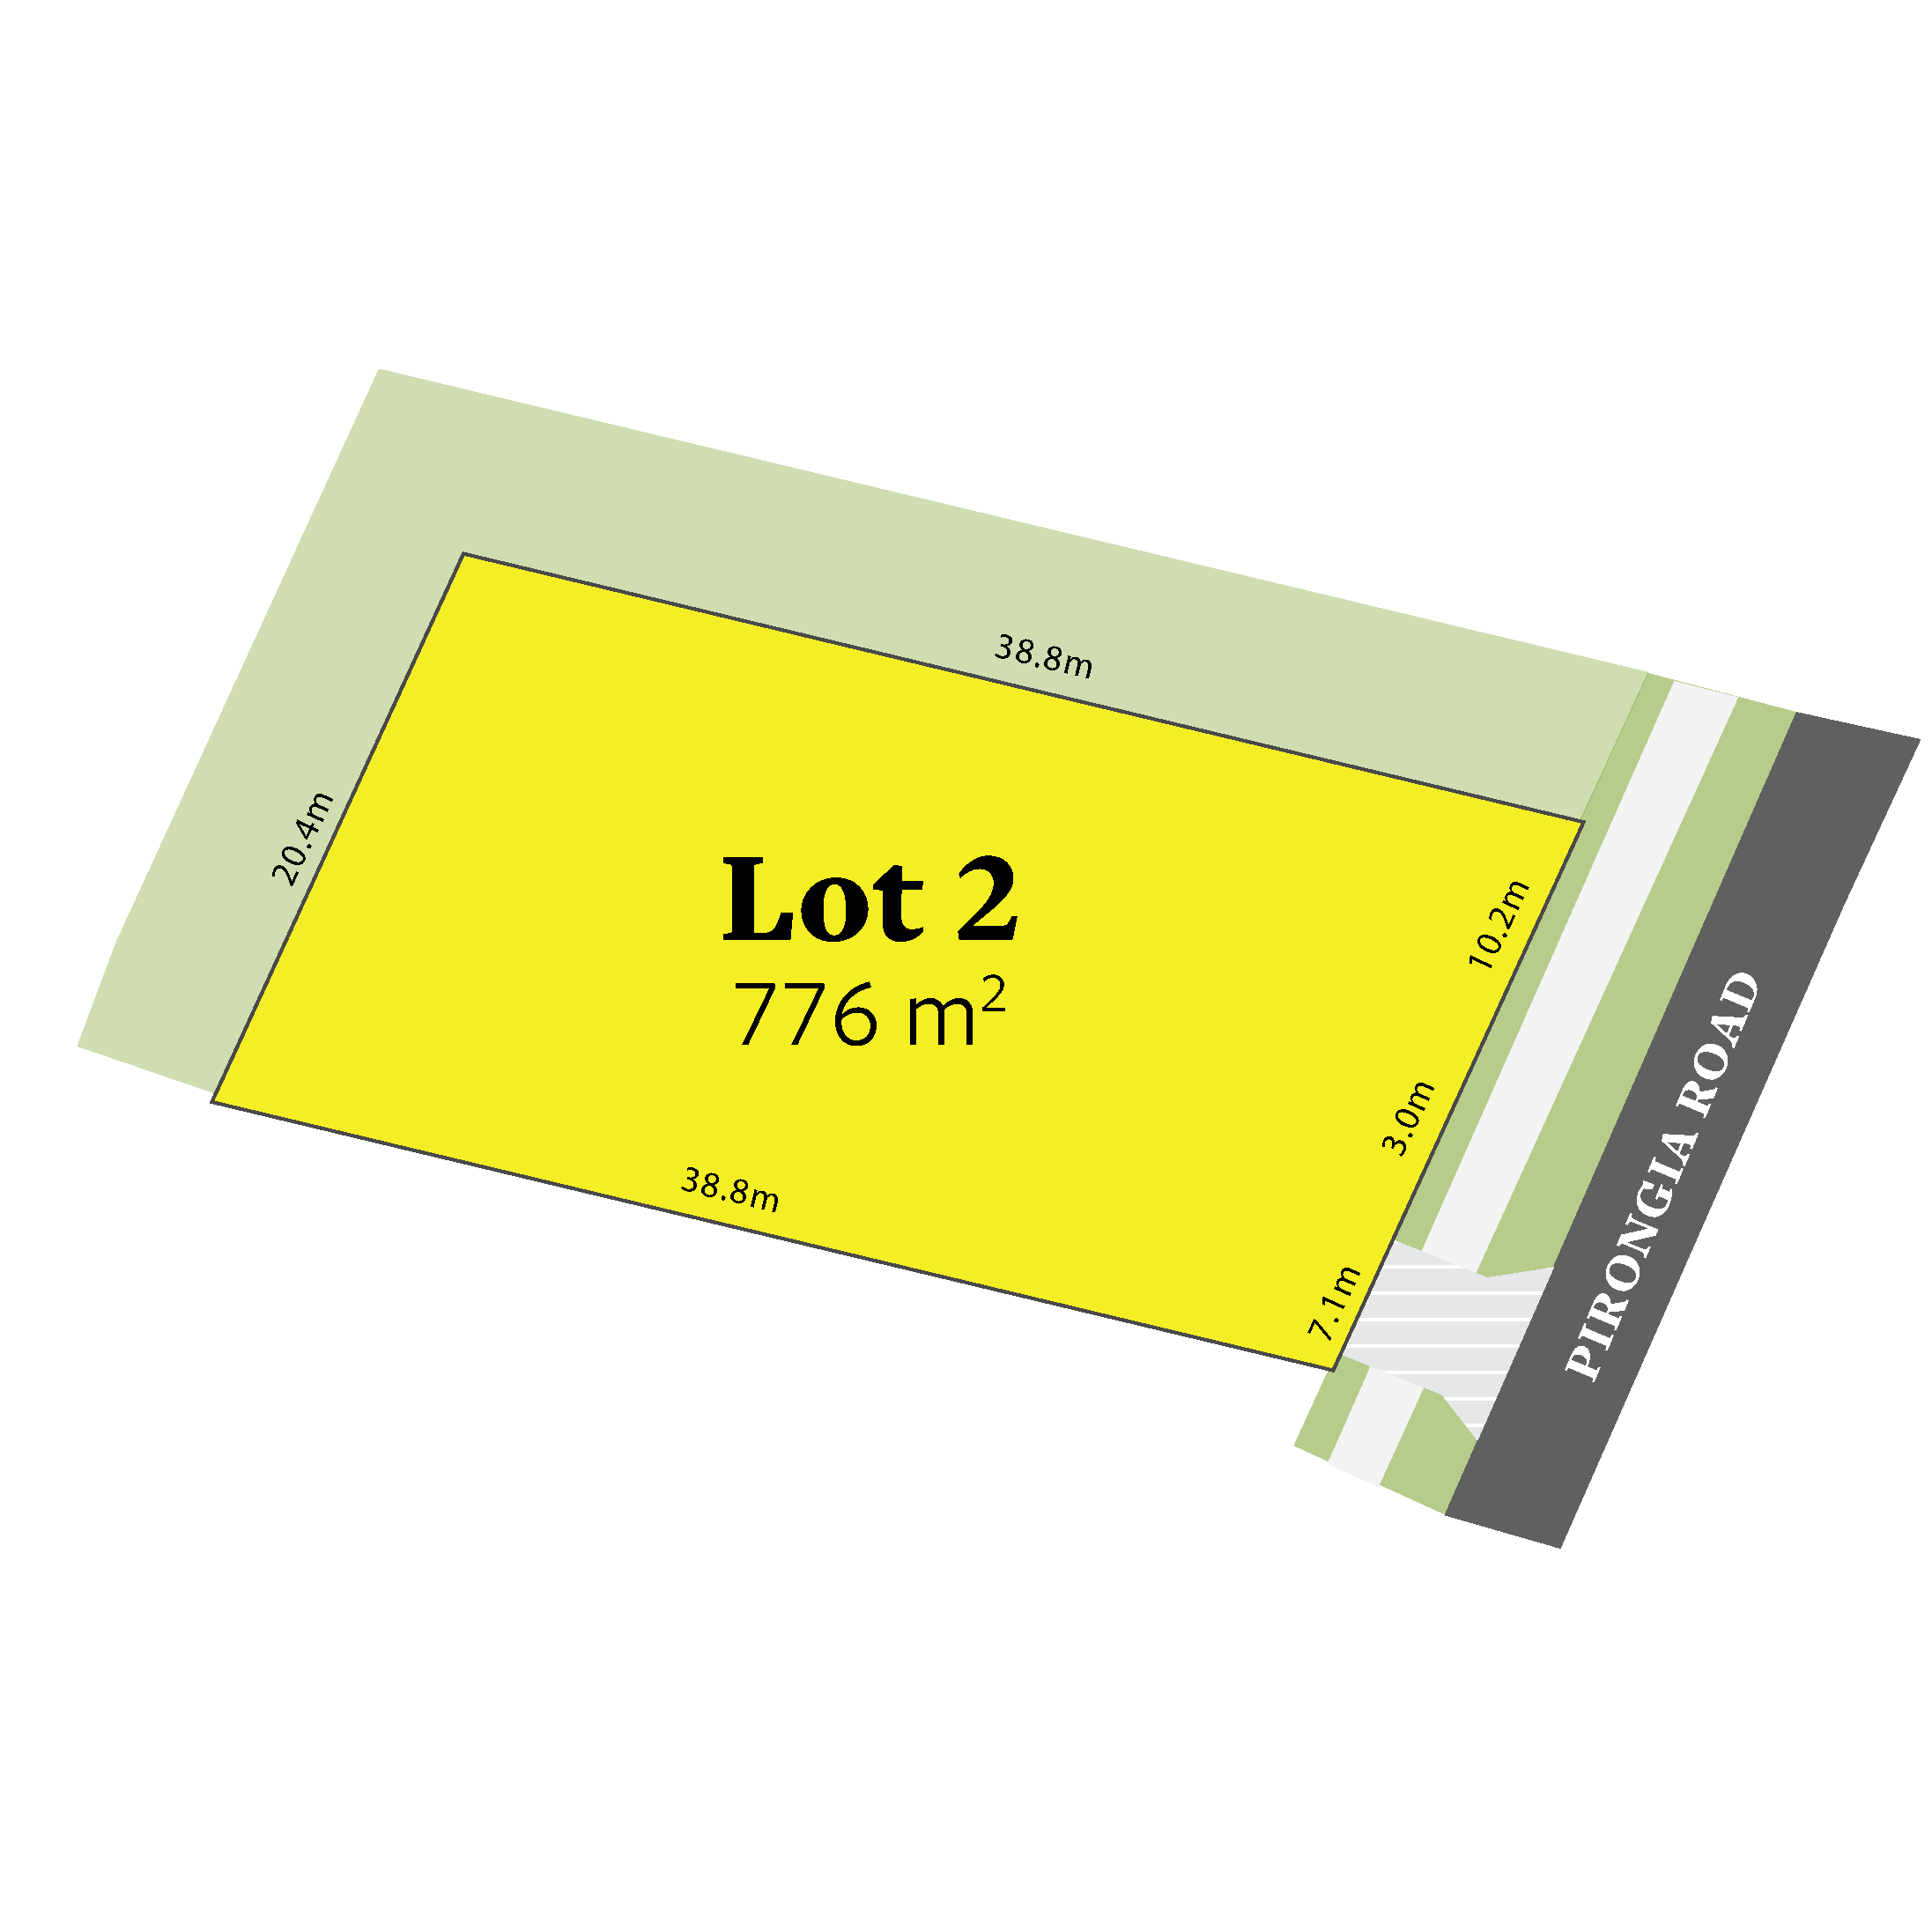 Image of Lot 2